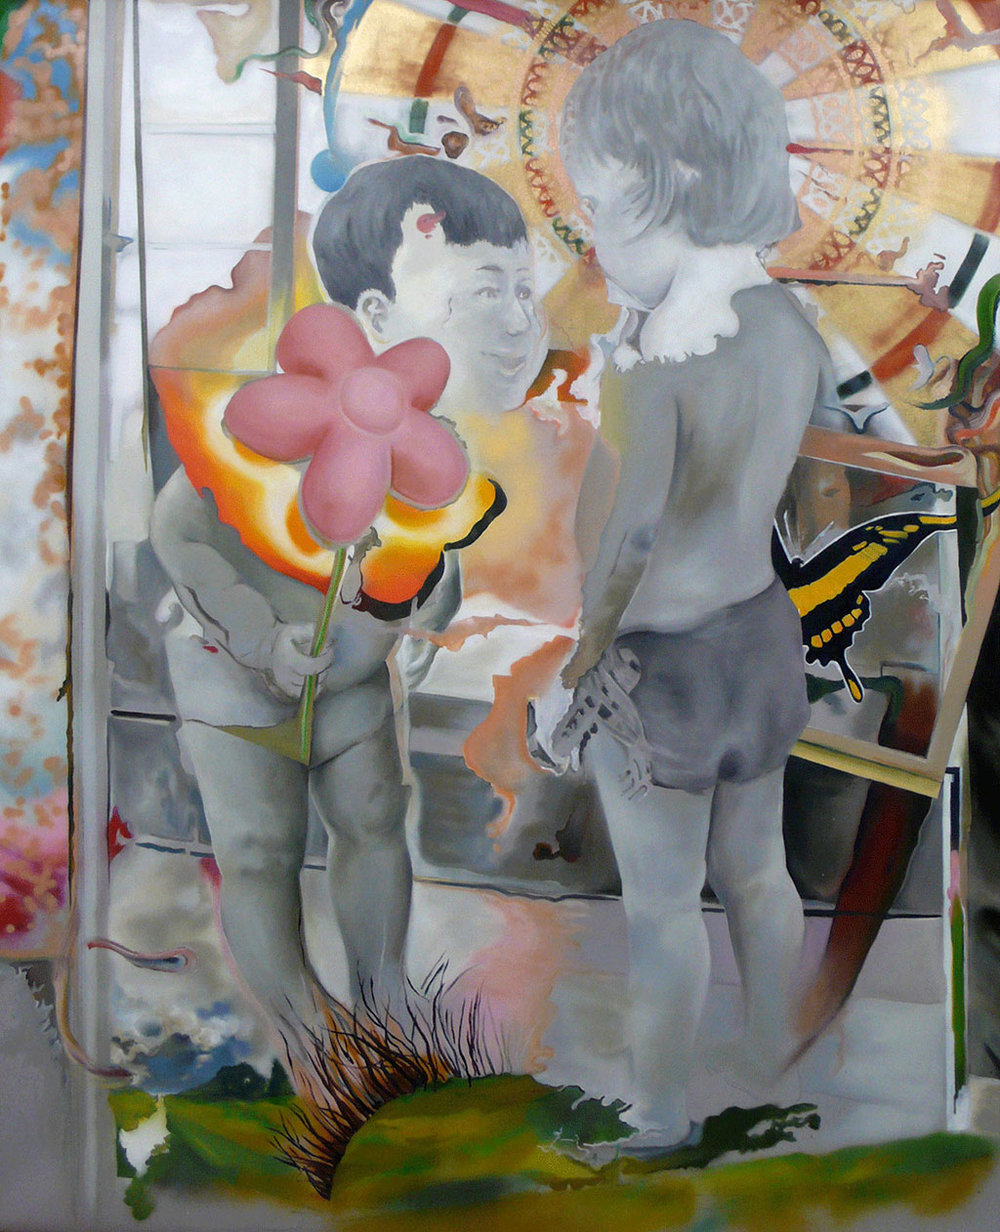 Il cavaliere della rosa, 2011, Oil and spray paint on PVC, 245 x 200 cm